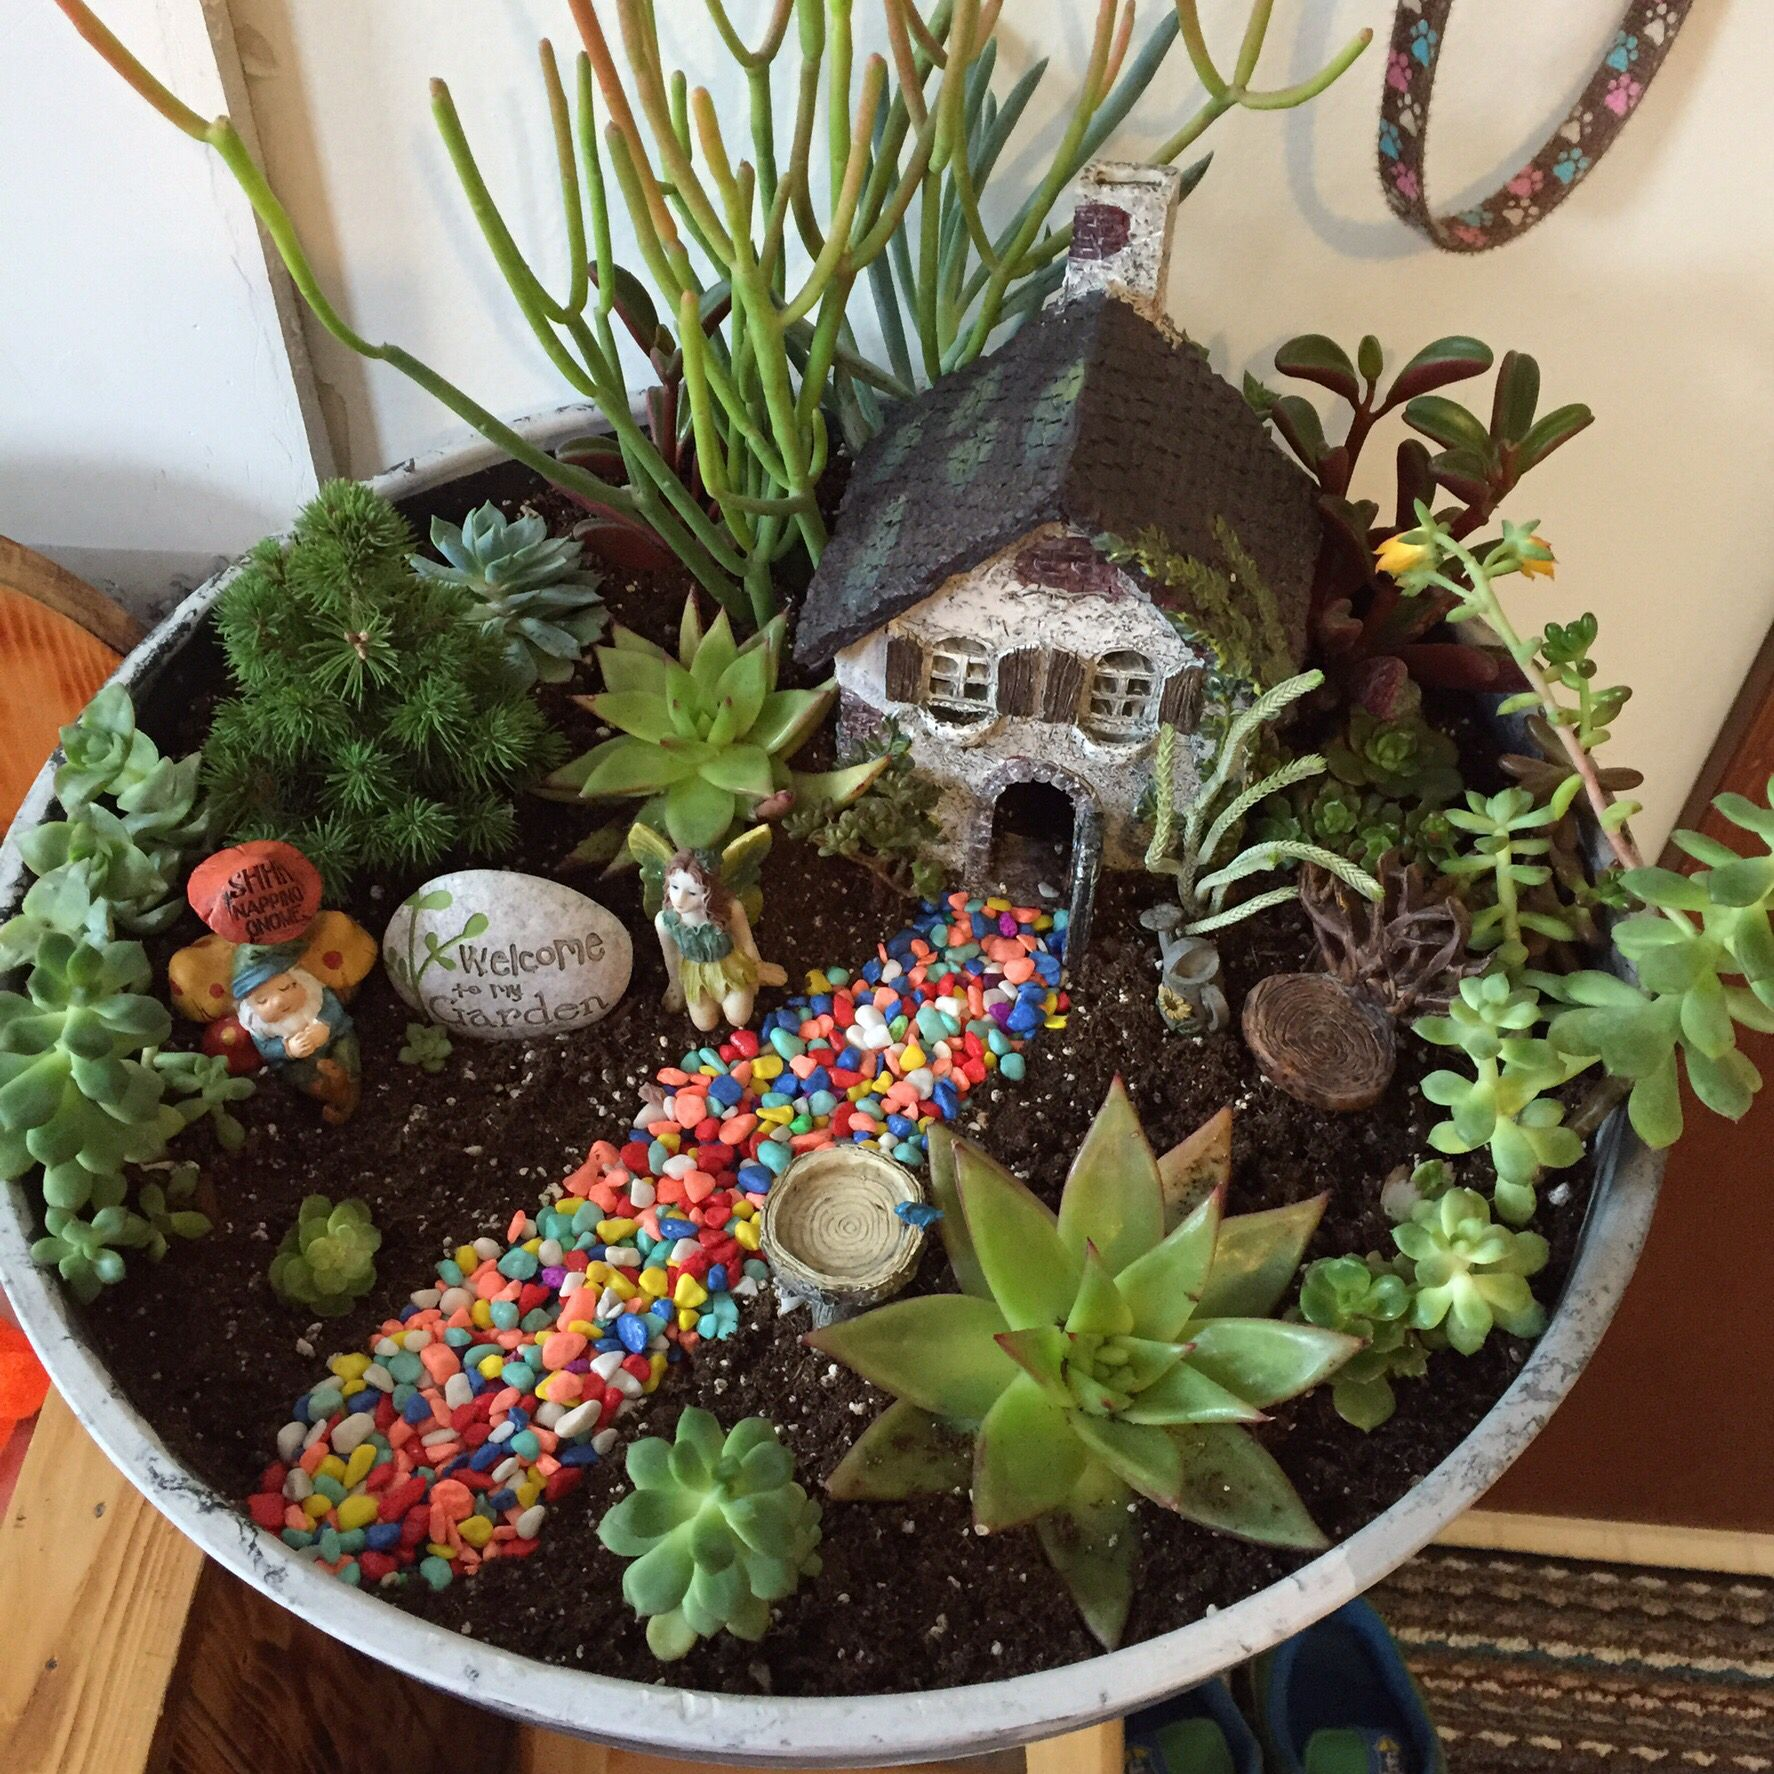 This Is The Mini Garden I Did Out Of Mostly Succulents. I